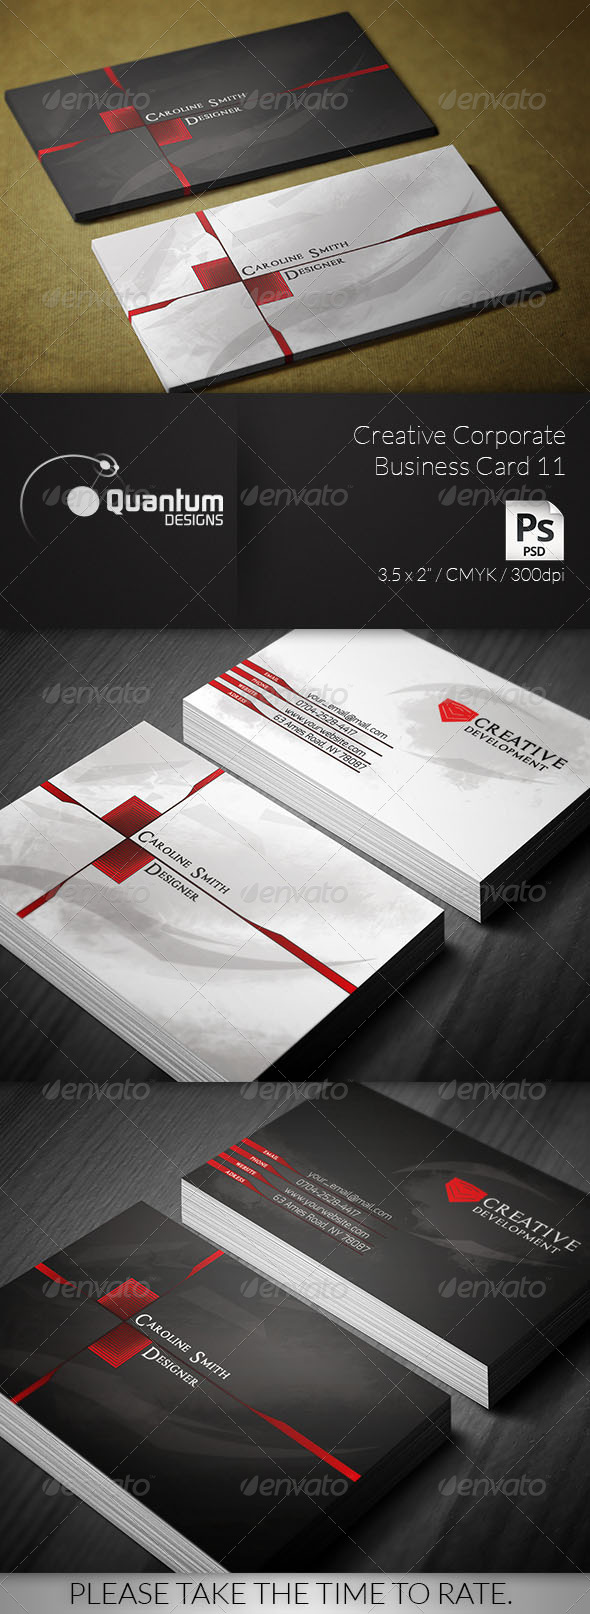 GraphicRiver Creative Corporate Business Card 11 6432140